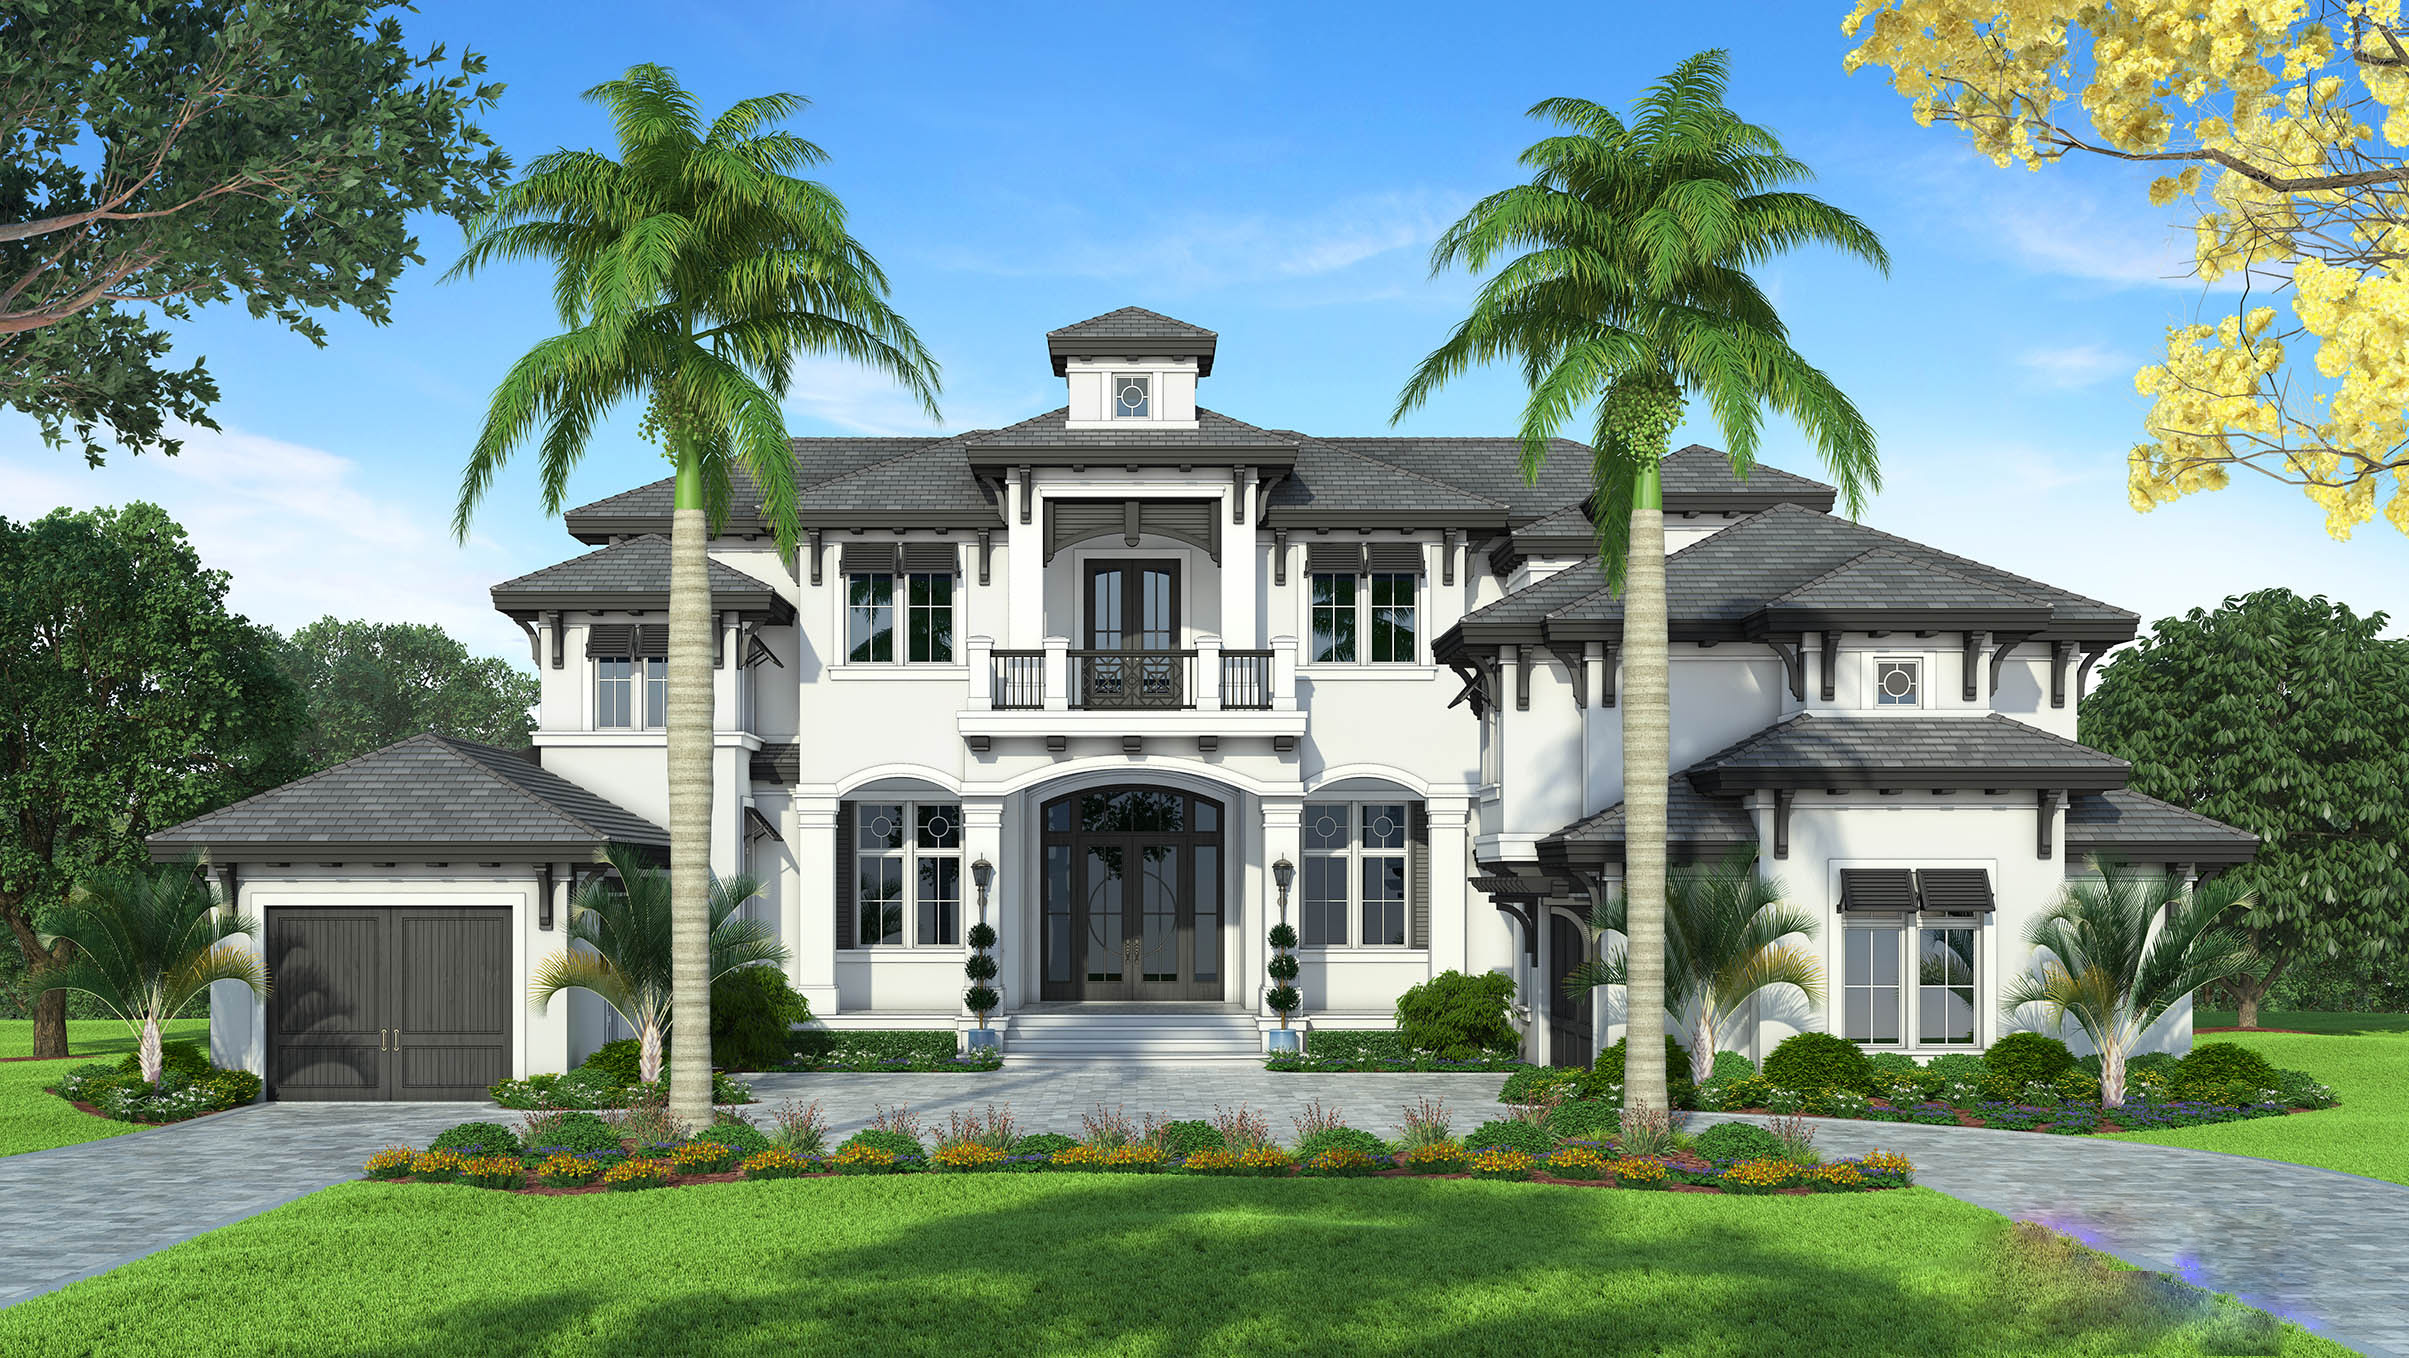 Grand florida house plan with junior master suite budron for Florida cottage plans